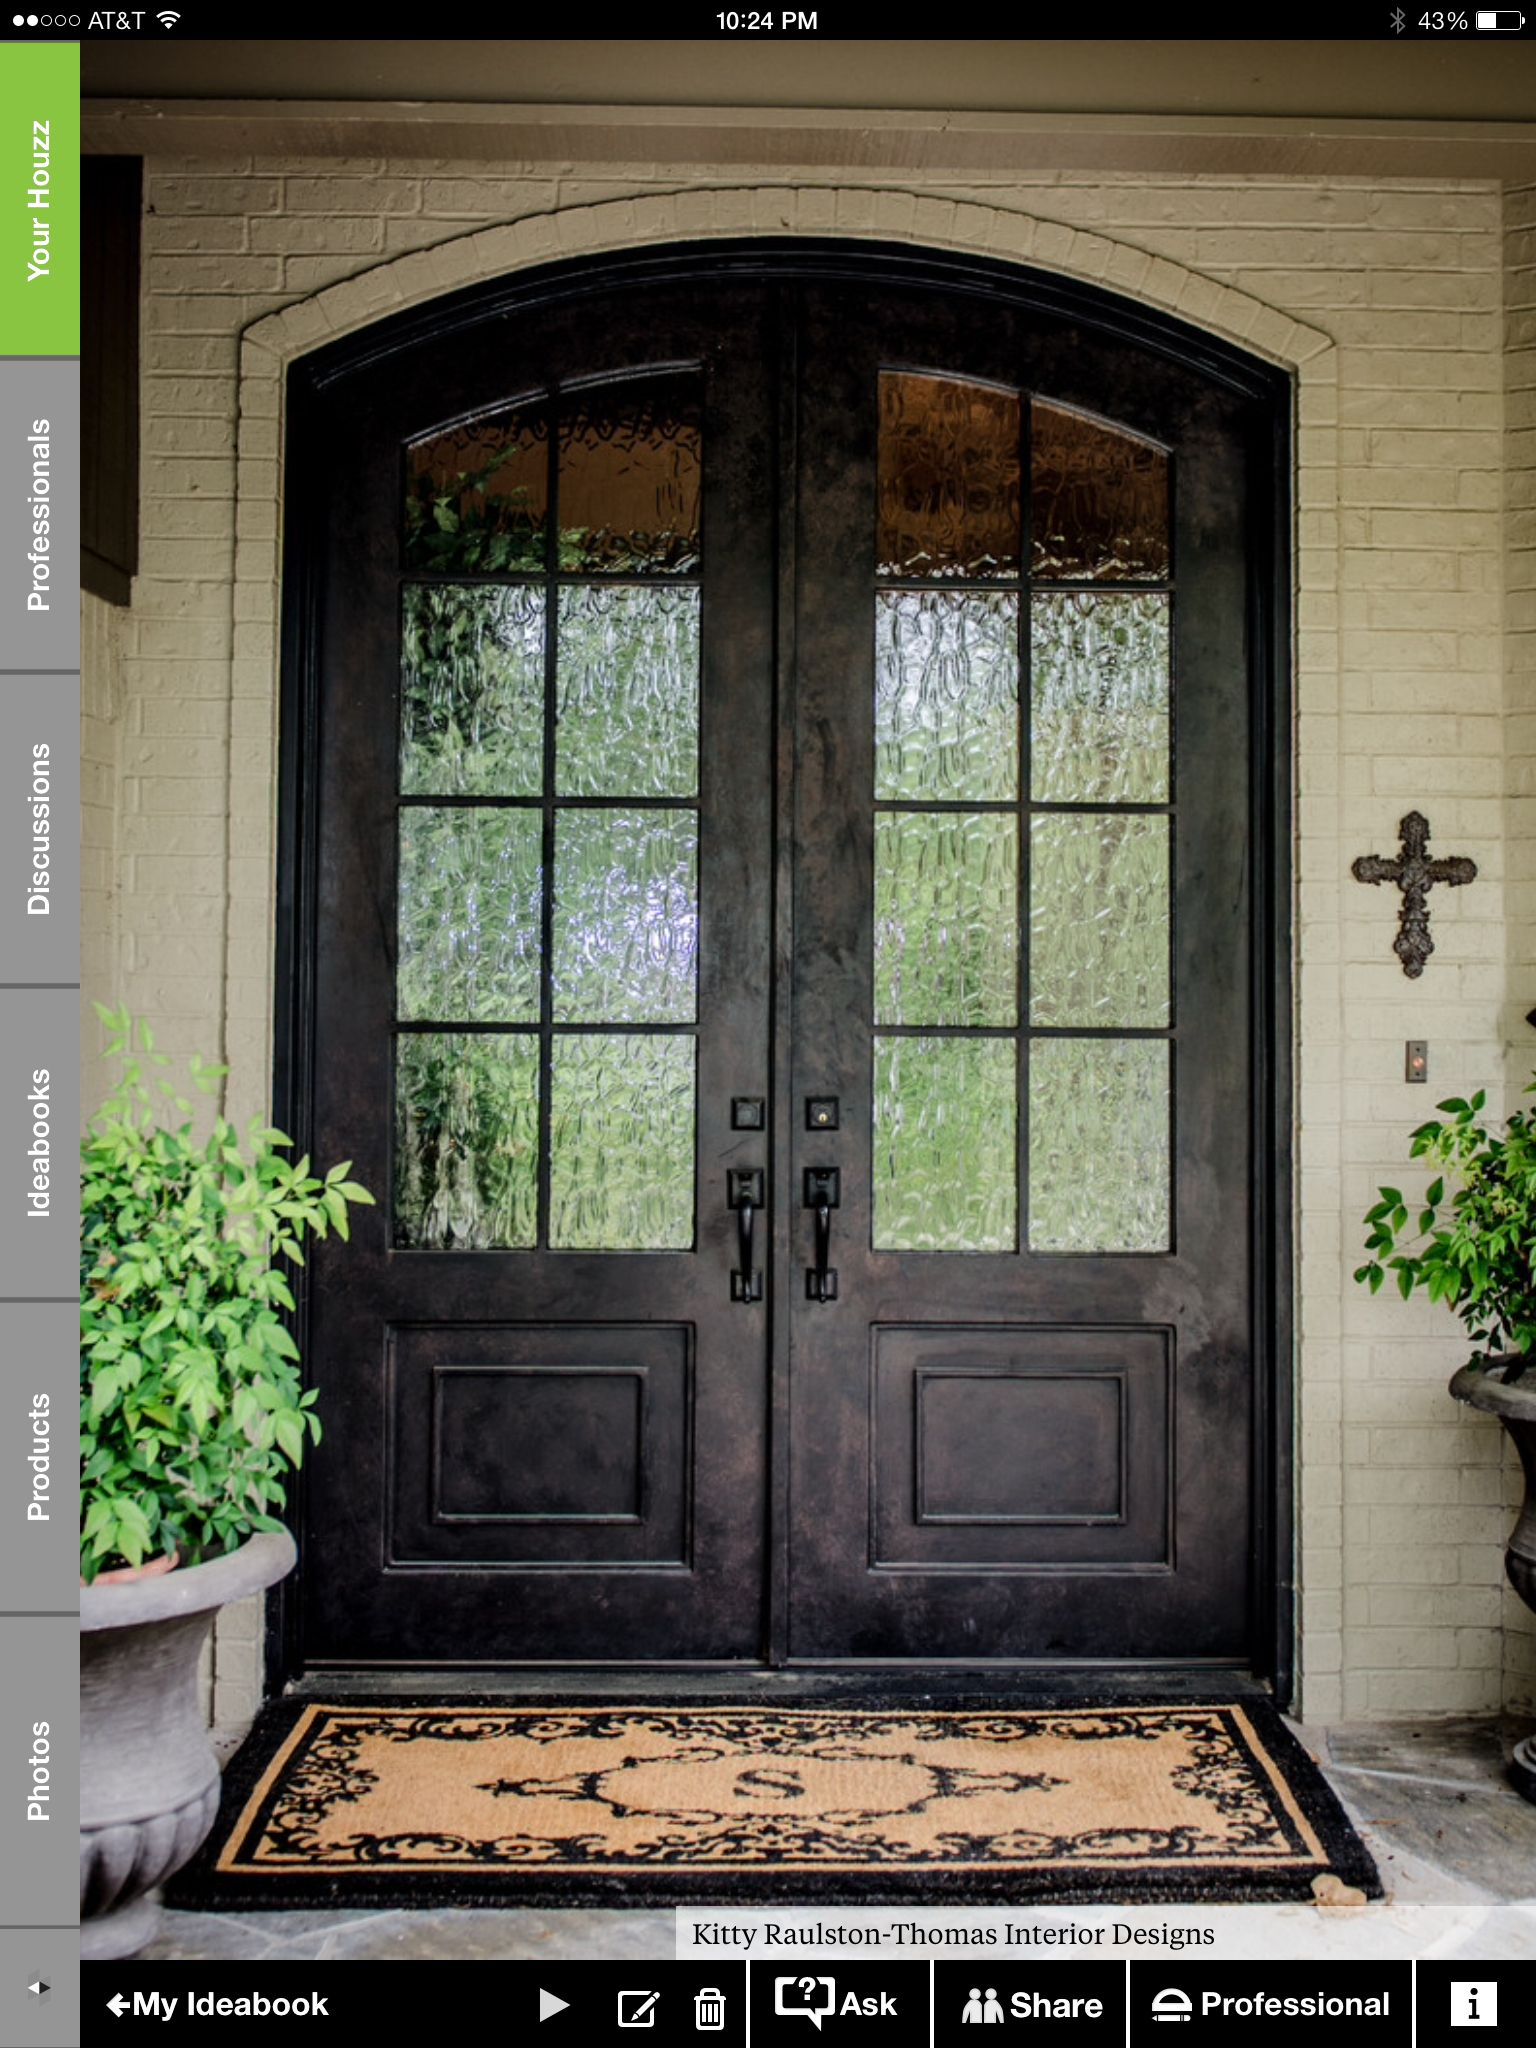 7 Amazing Black Front Door Ideas Frontdoor Frontdoorideas Black Blackfrontdoor Door Blackdoor H Front Entry Doors Front Door Design Traditional Exterior